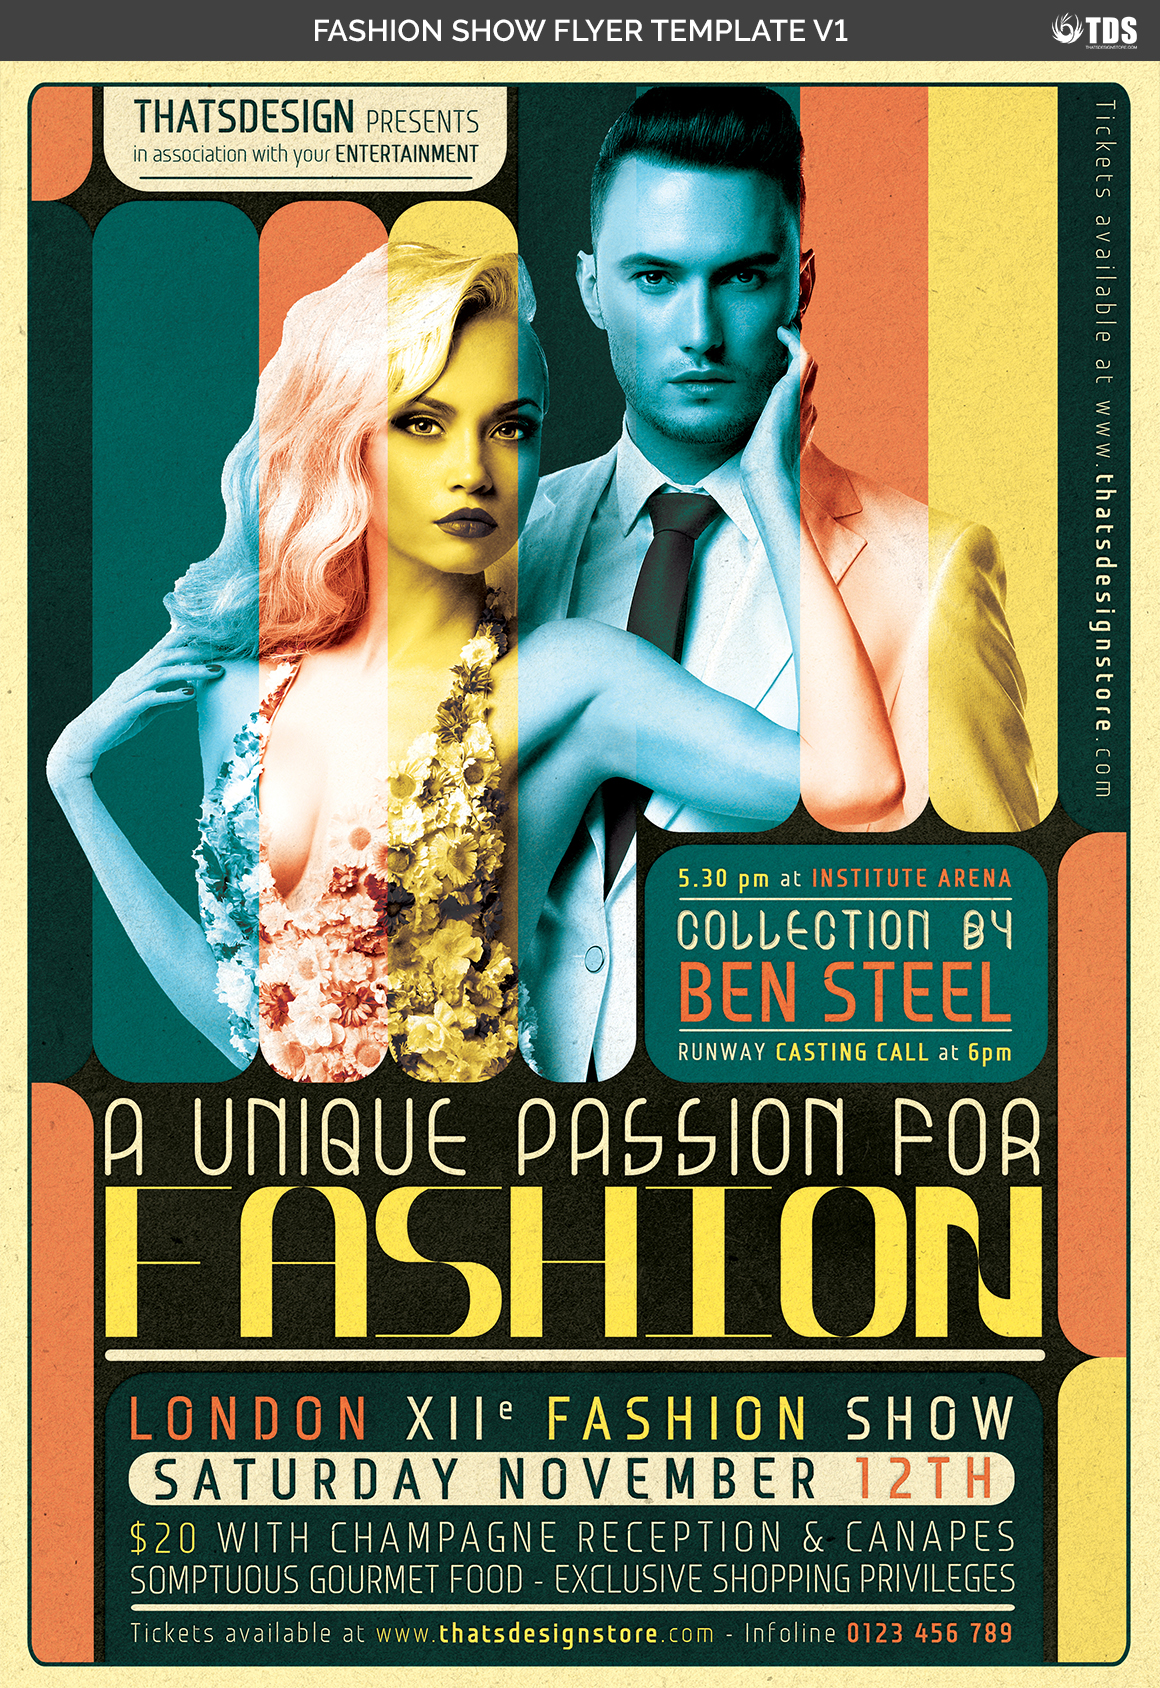 Fashion Show Flyer Template V1 example image 4